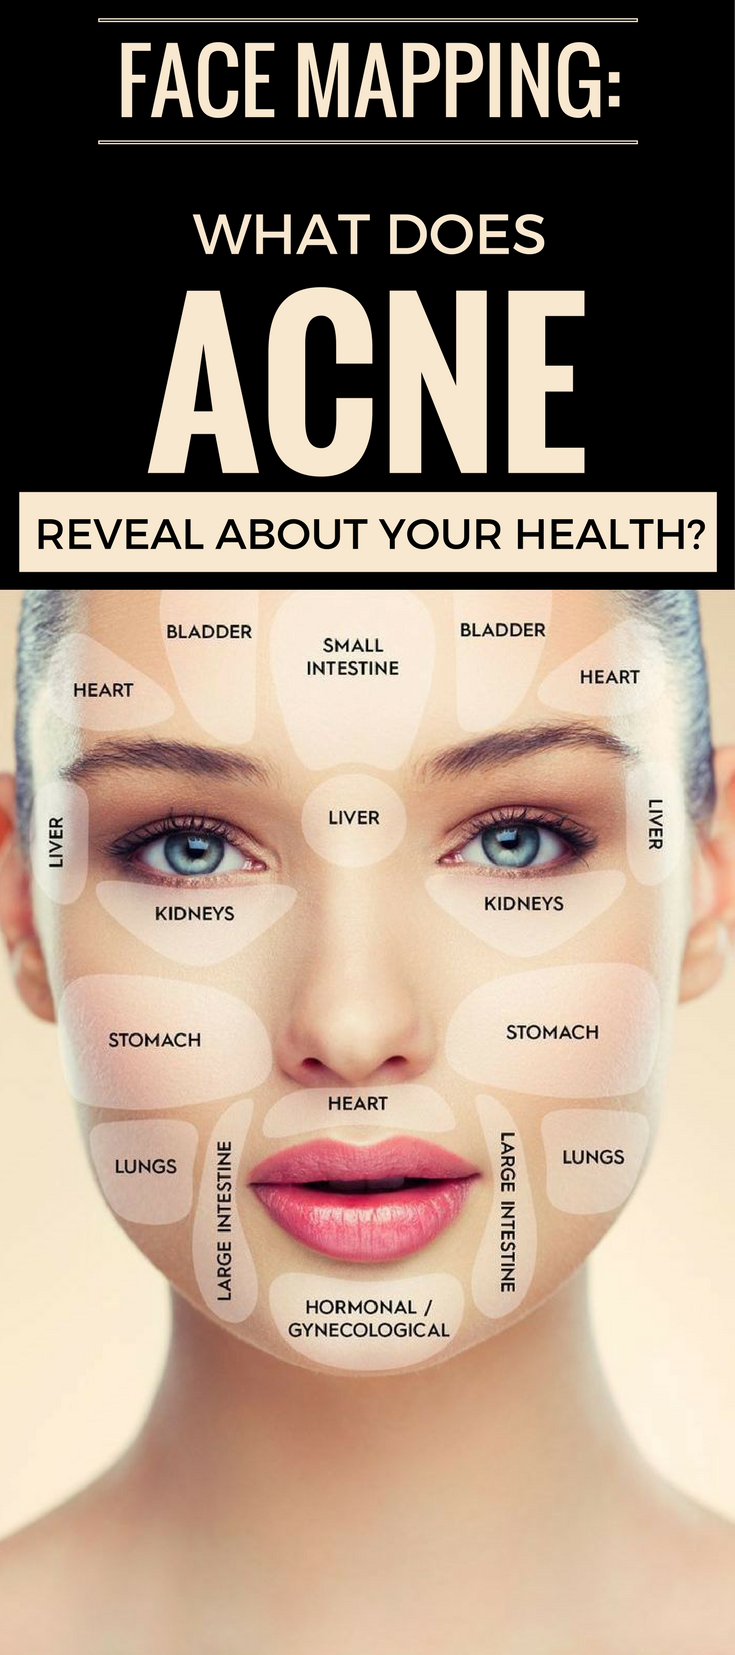 Face Mapping: What Does Acne Reveal About Your Health | HOME ... on zit mapping, atrial fibrillation mapping, skin mapping, botox mapping, anxiety mapping, anthrax mapping,